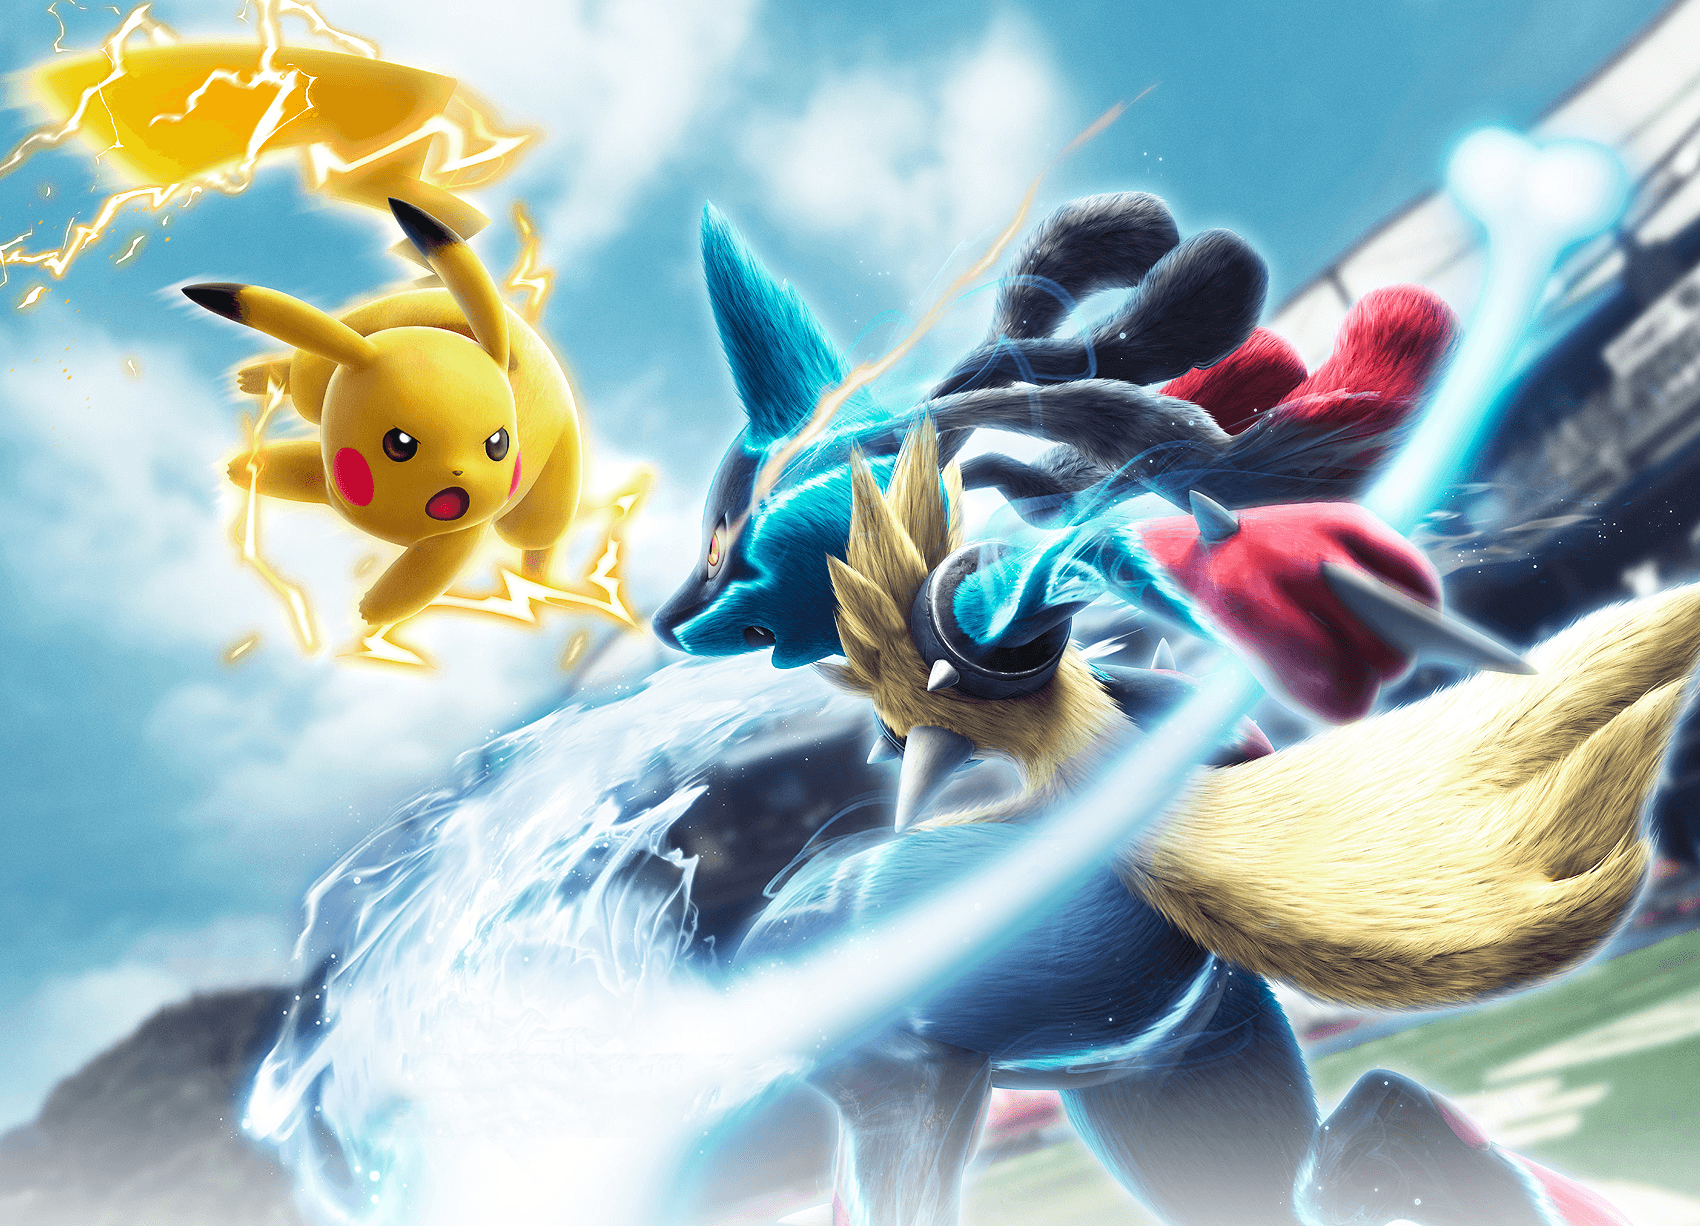 Mega Lucario VS Pikachu Wallpaper and Background Image | 1700x1226 ...